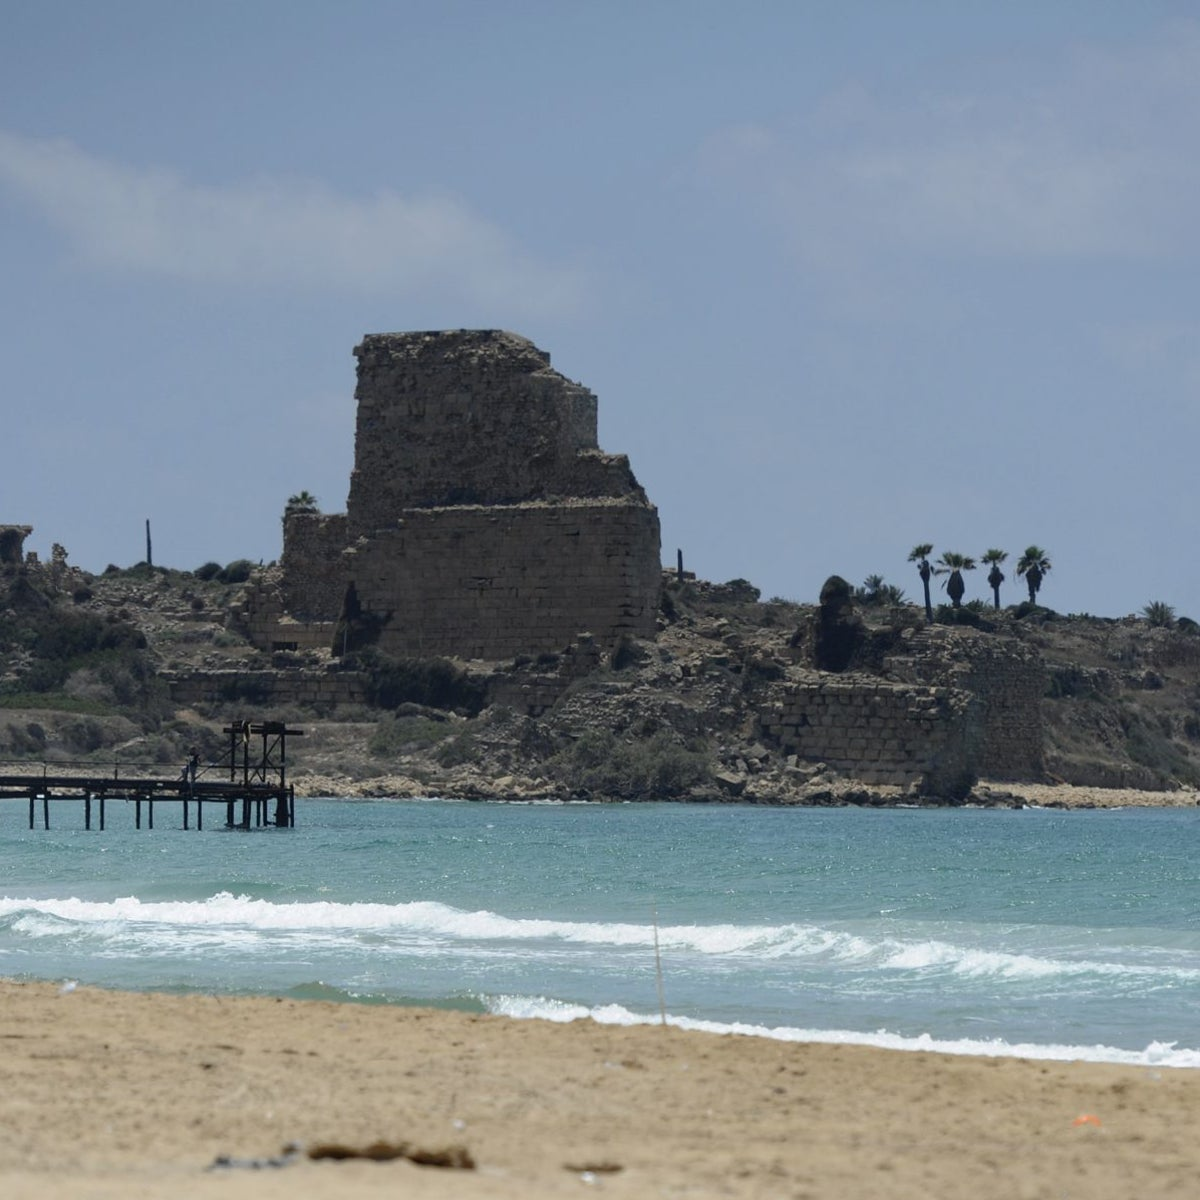 The Atlit fortress.